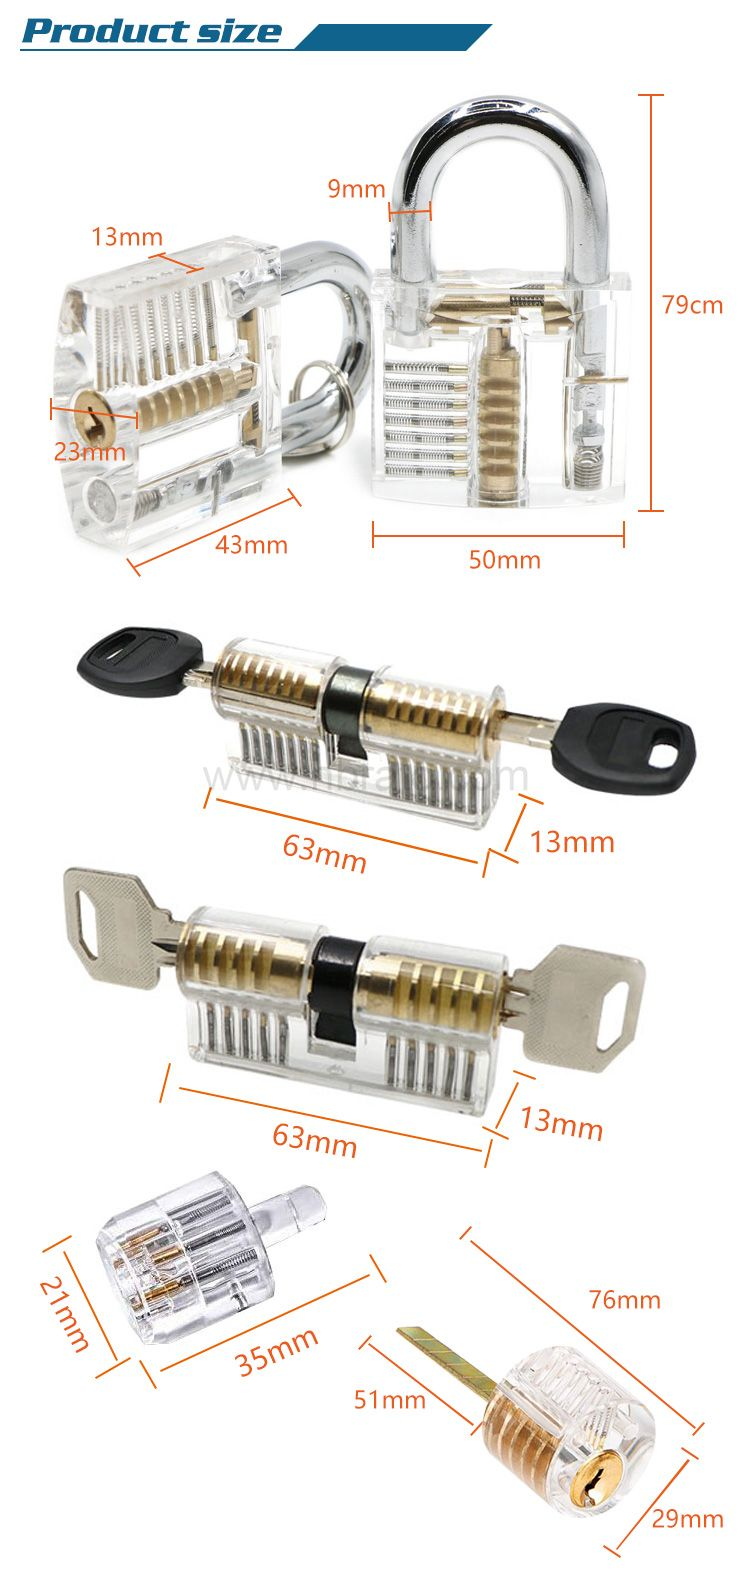 Transparent Lock Picking Set Professional Practice Cutaway Clear Locks Combination for Locksmith Learn Skill